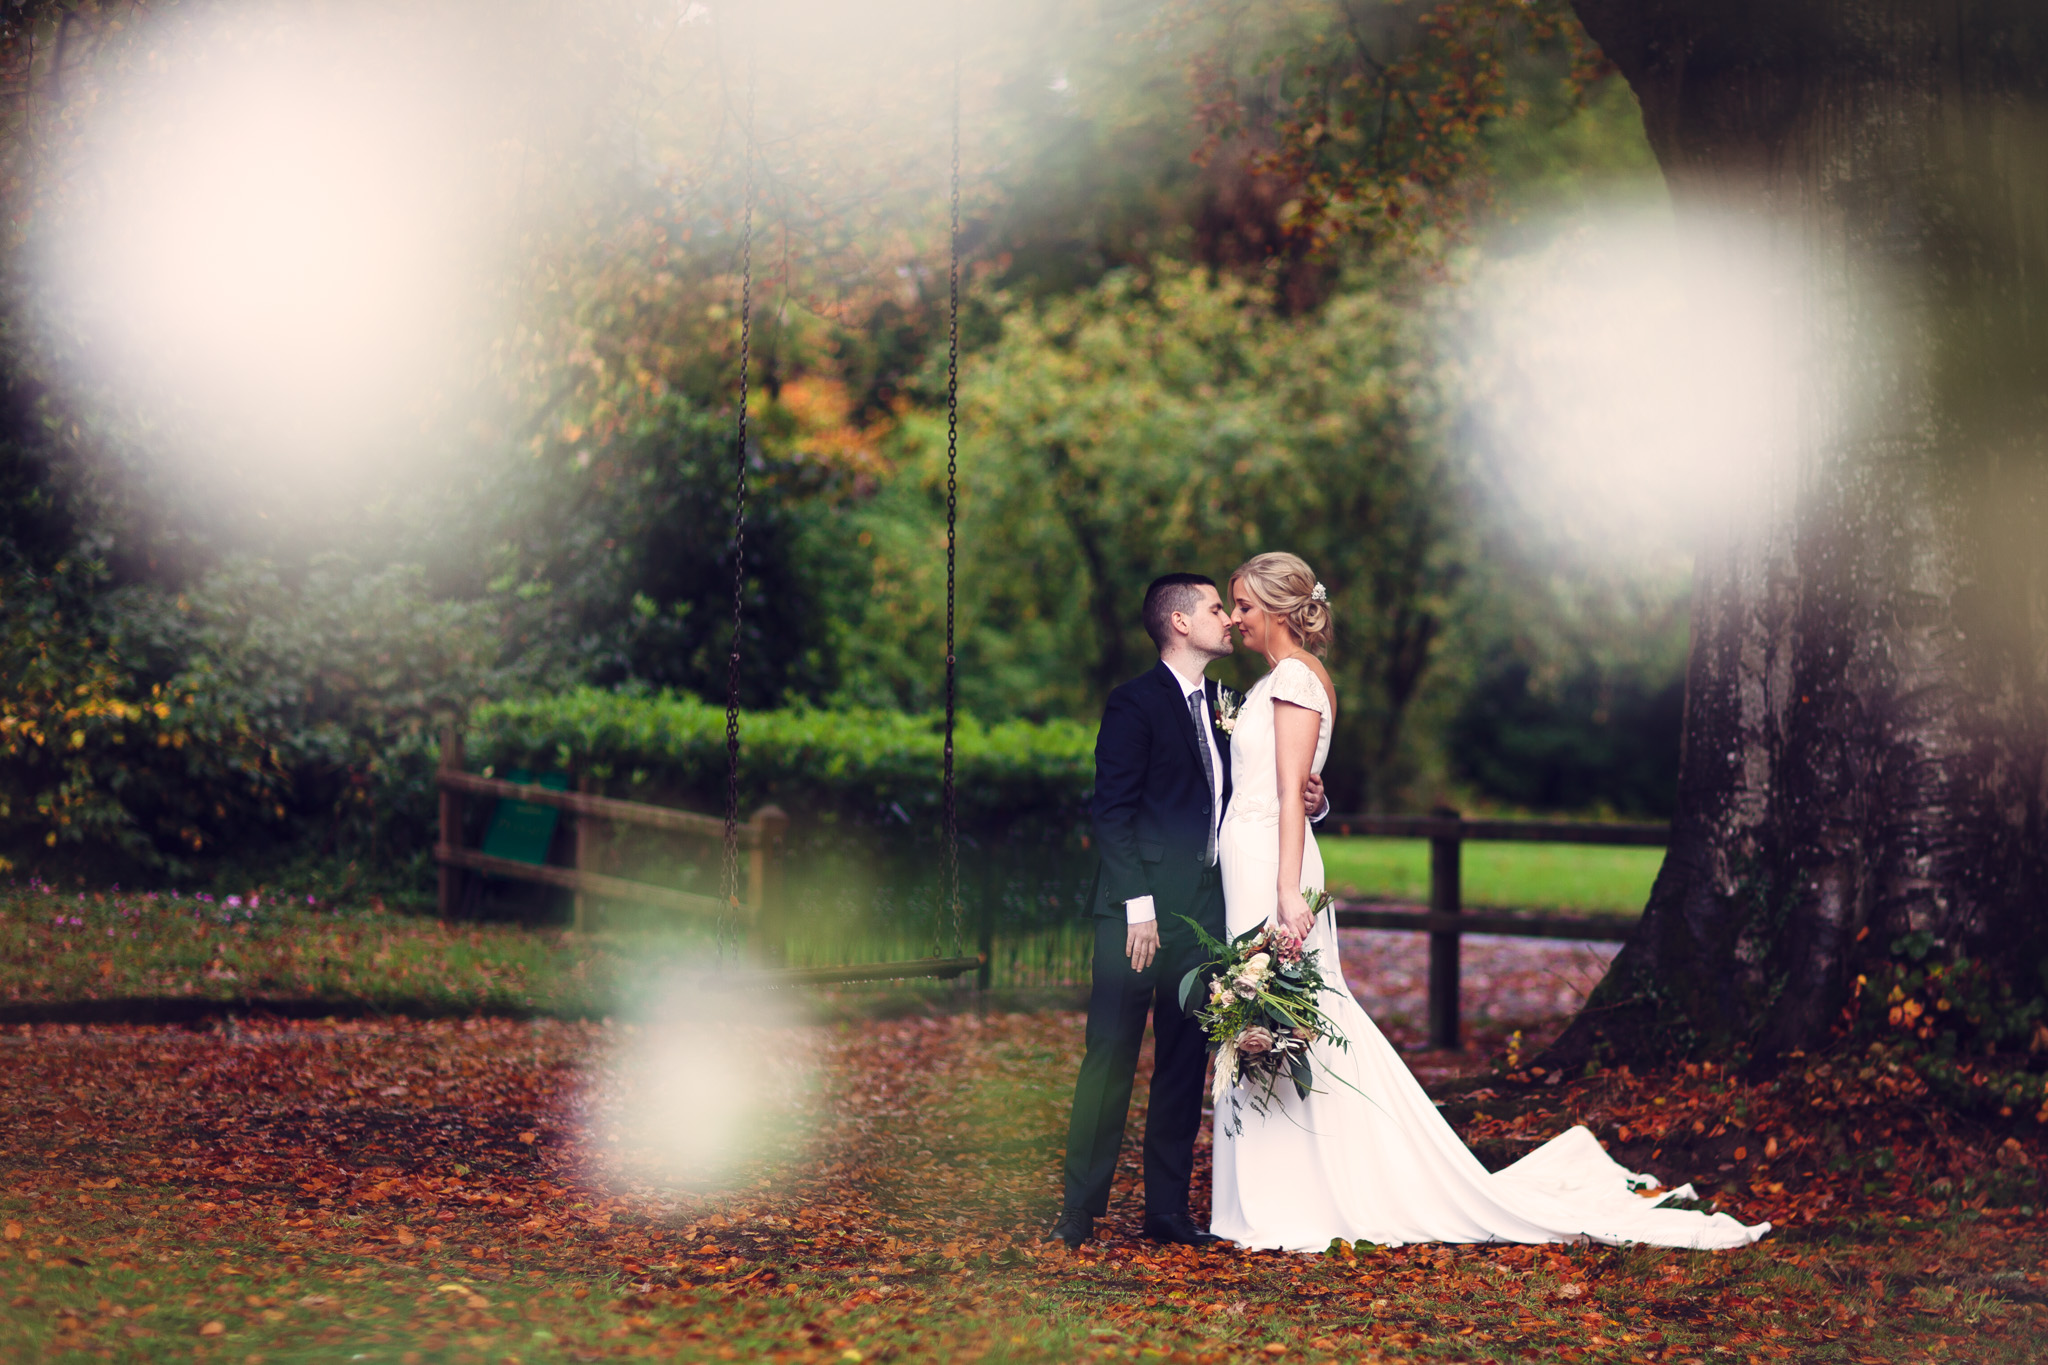 Mark_Barnes_Northern_Ireland_Wedding_Photography_Ballyscullion_Park_Wedding_Photography_Stef&Bobby-47.jpg